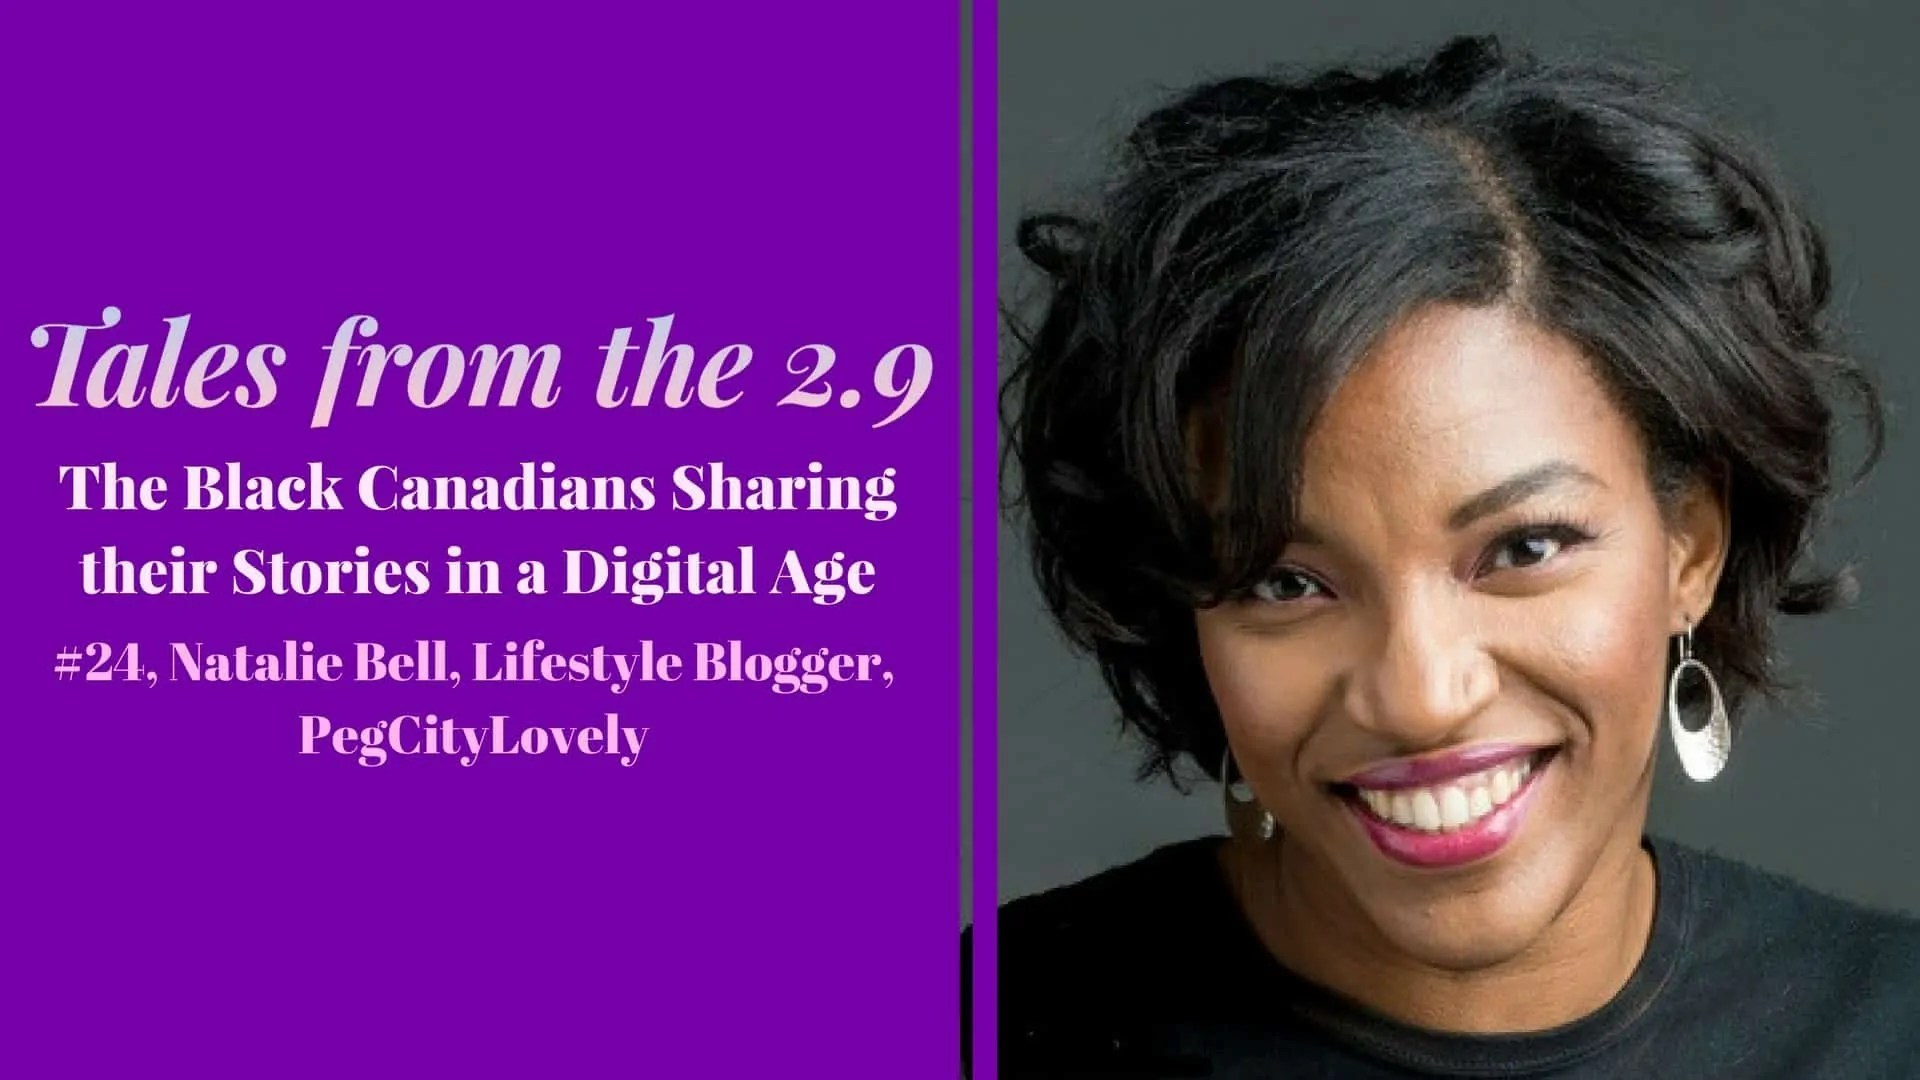 Tales from the 2.9 — The Black Canadians Sharing their Stories in a Digital Age — Vol. 2 #24, Natalie Bell, Lifestyle Blogger, PegCityLovely (Featured Image)